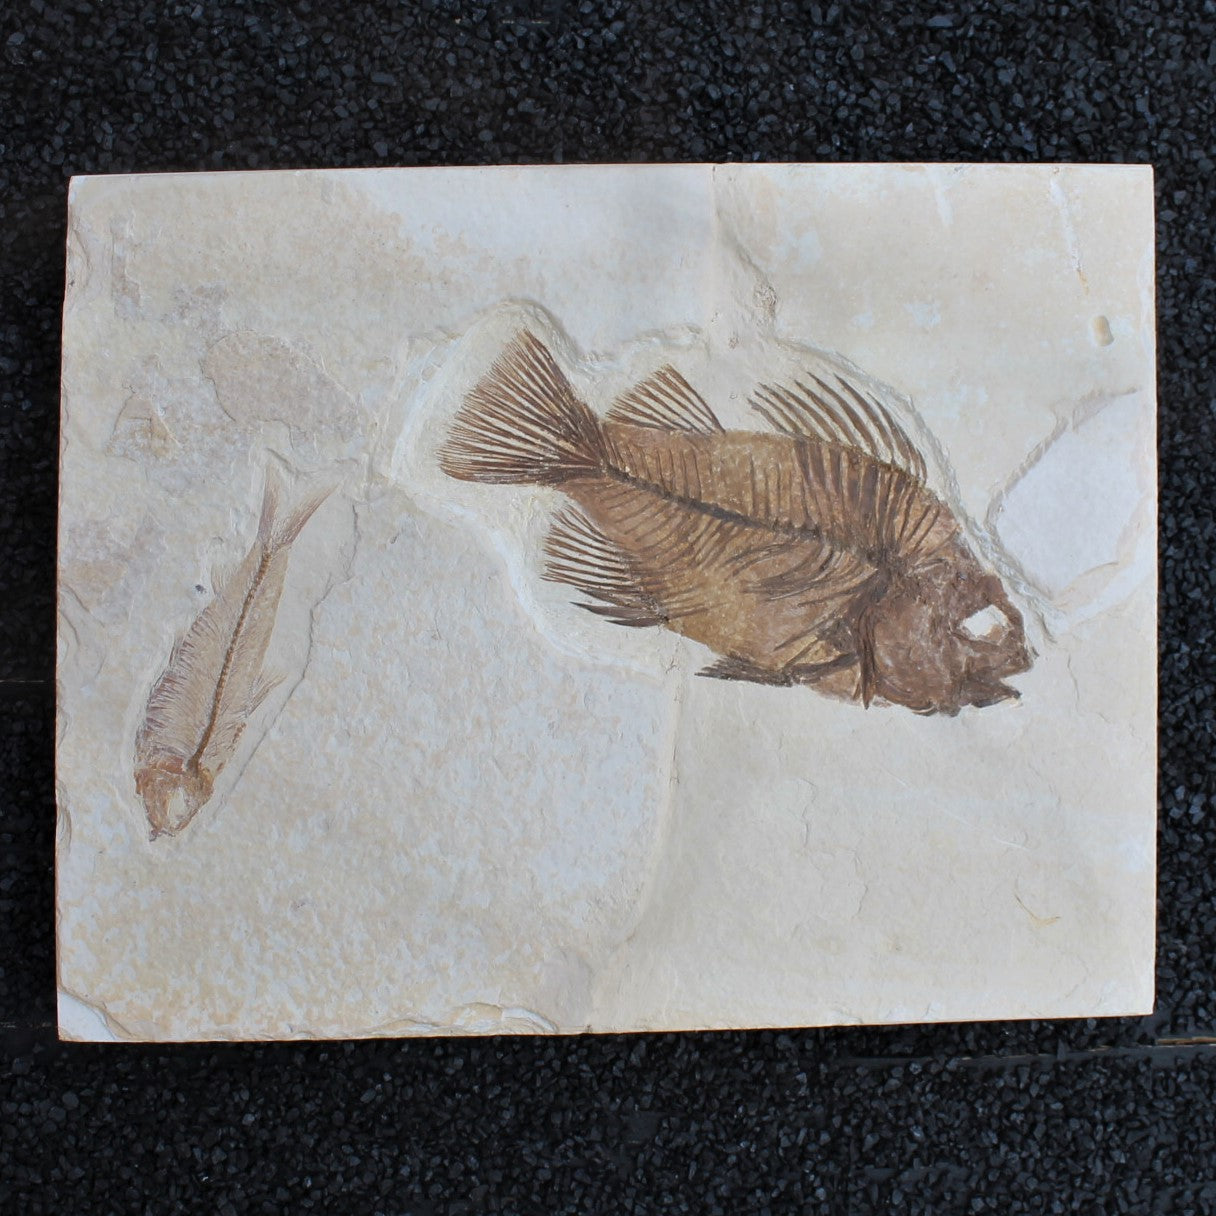 Priscacara Fossil with Second Fish